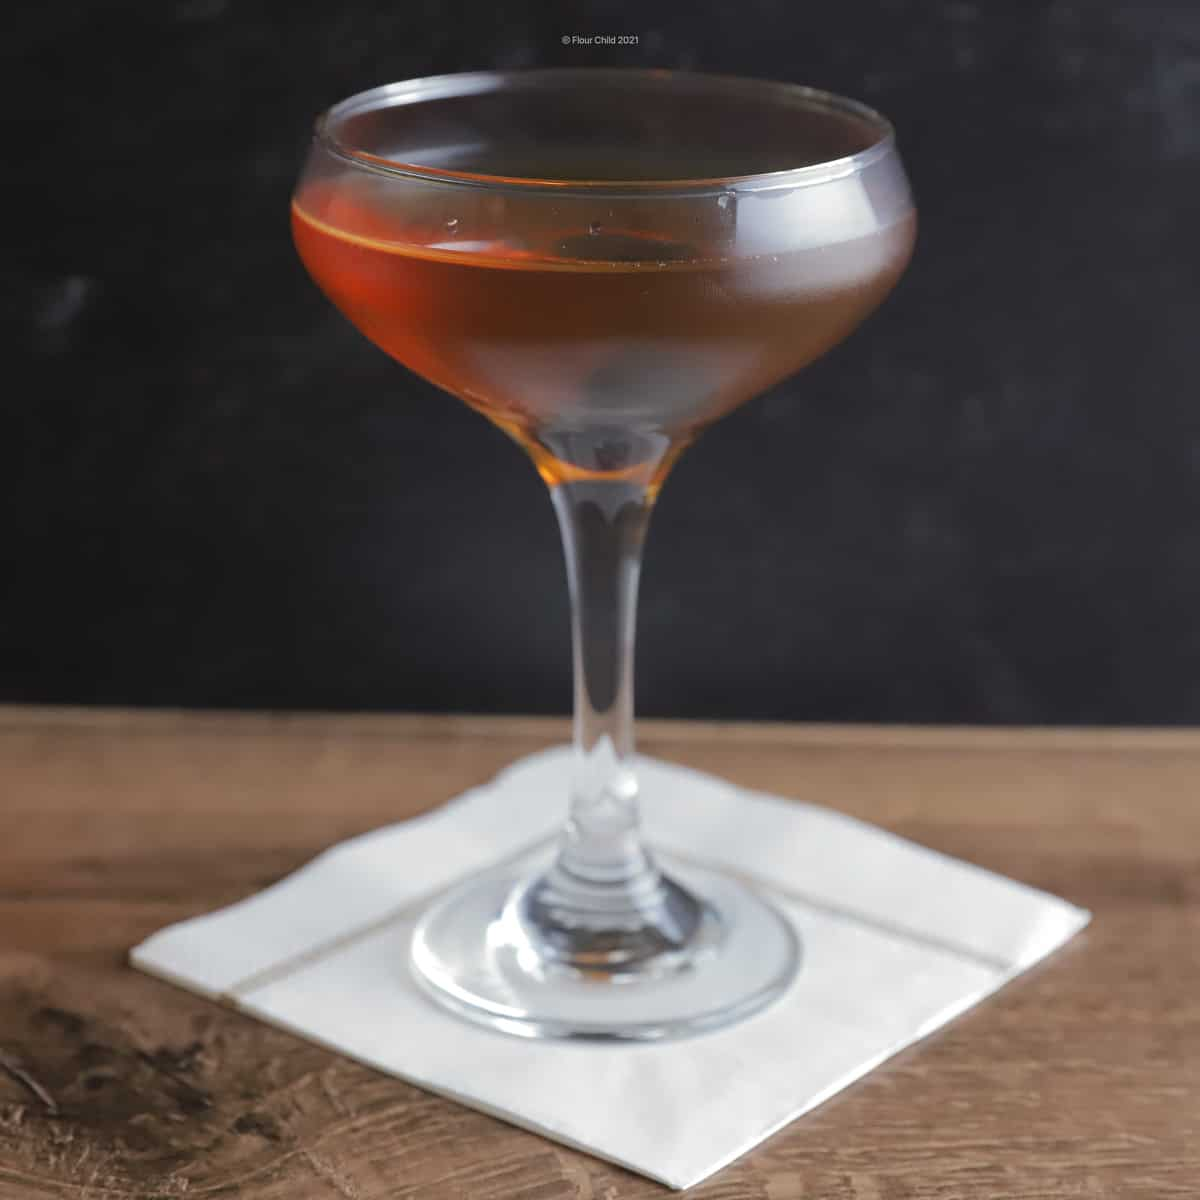 The simple, elegant Manhattan cocktail with Bourbon in a cocktail glass